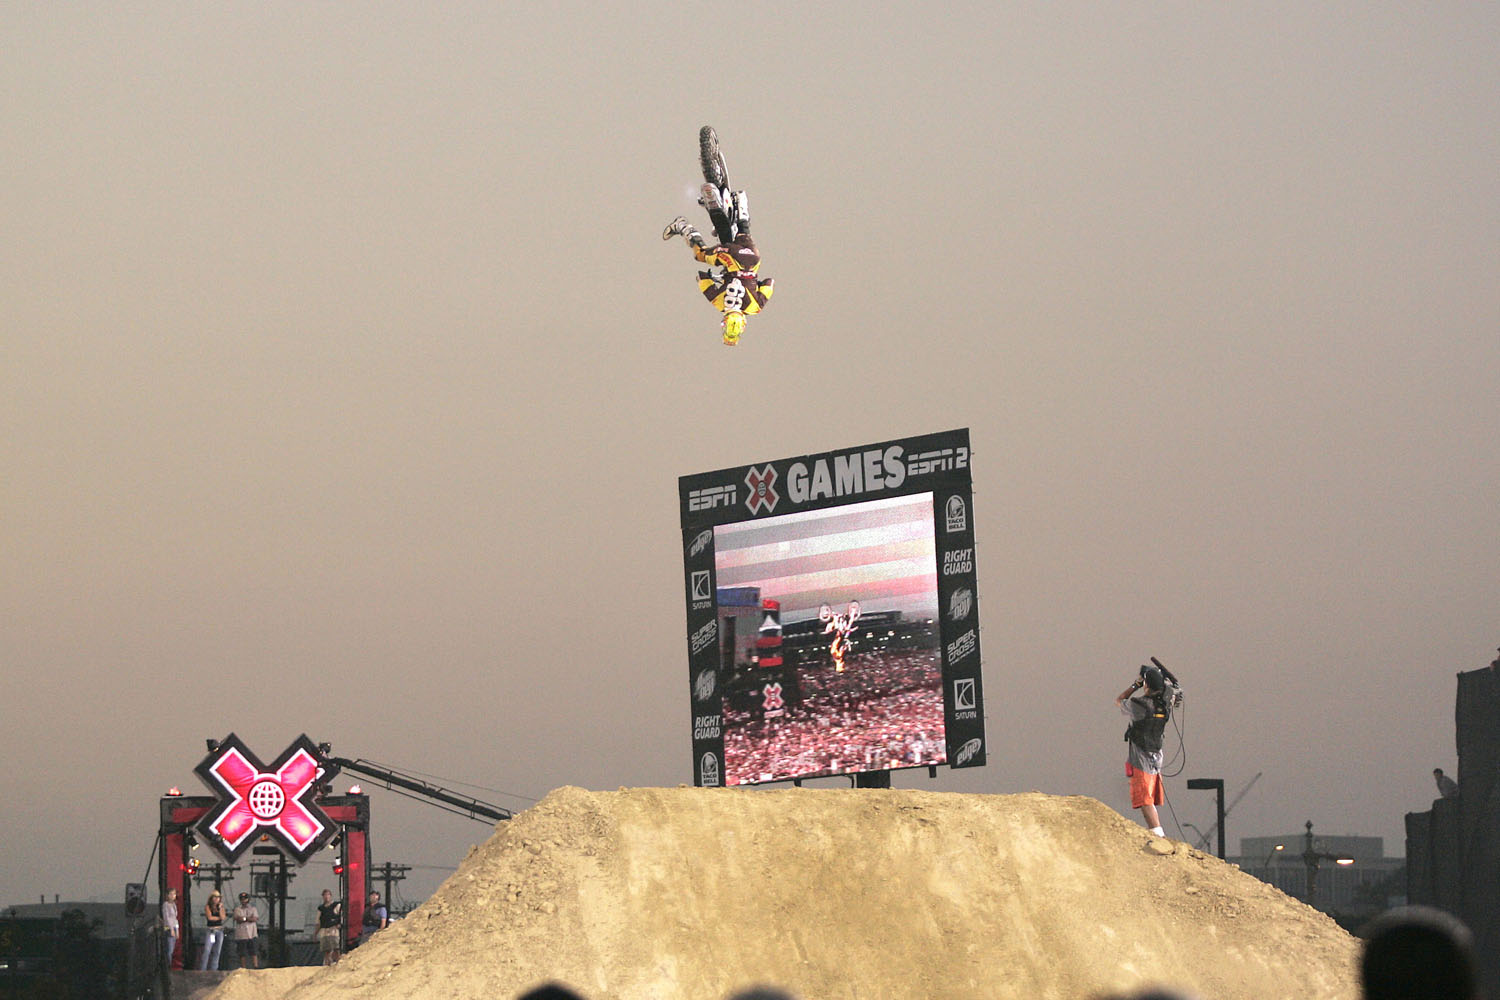 Travis Pastrana during the Moto X Best Trick contest at X Games 11 at the Staples Center in Los Angeles, California on August 4, 2005.